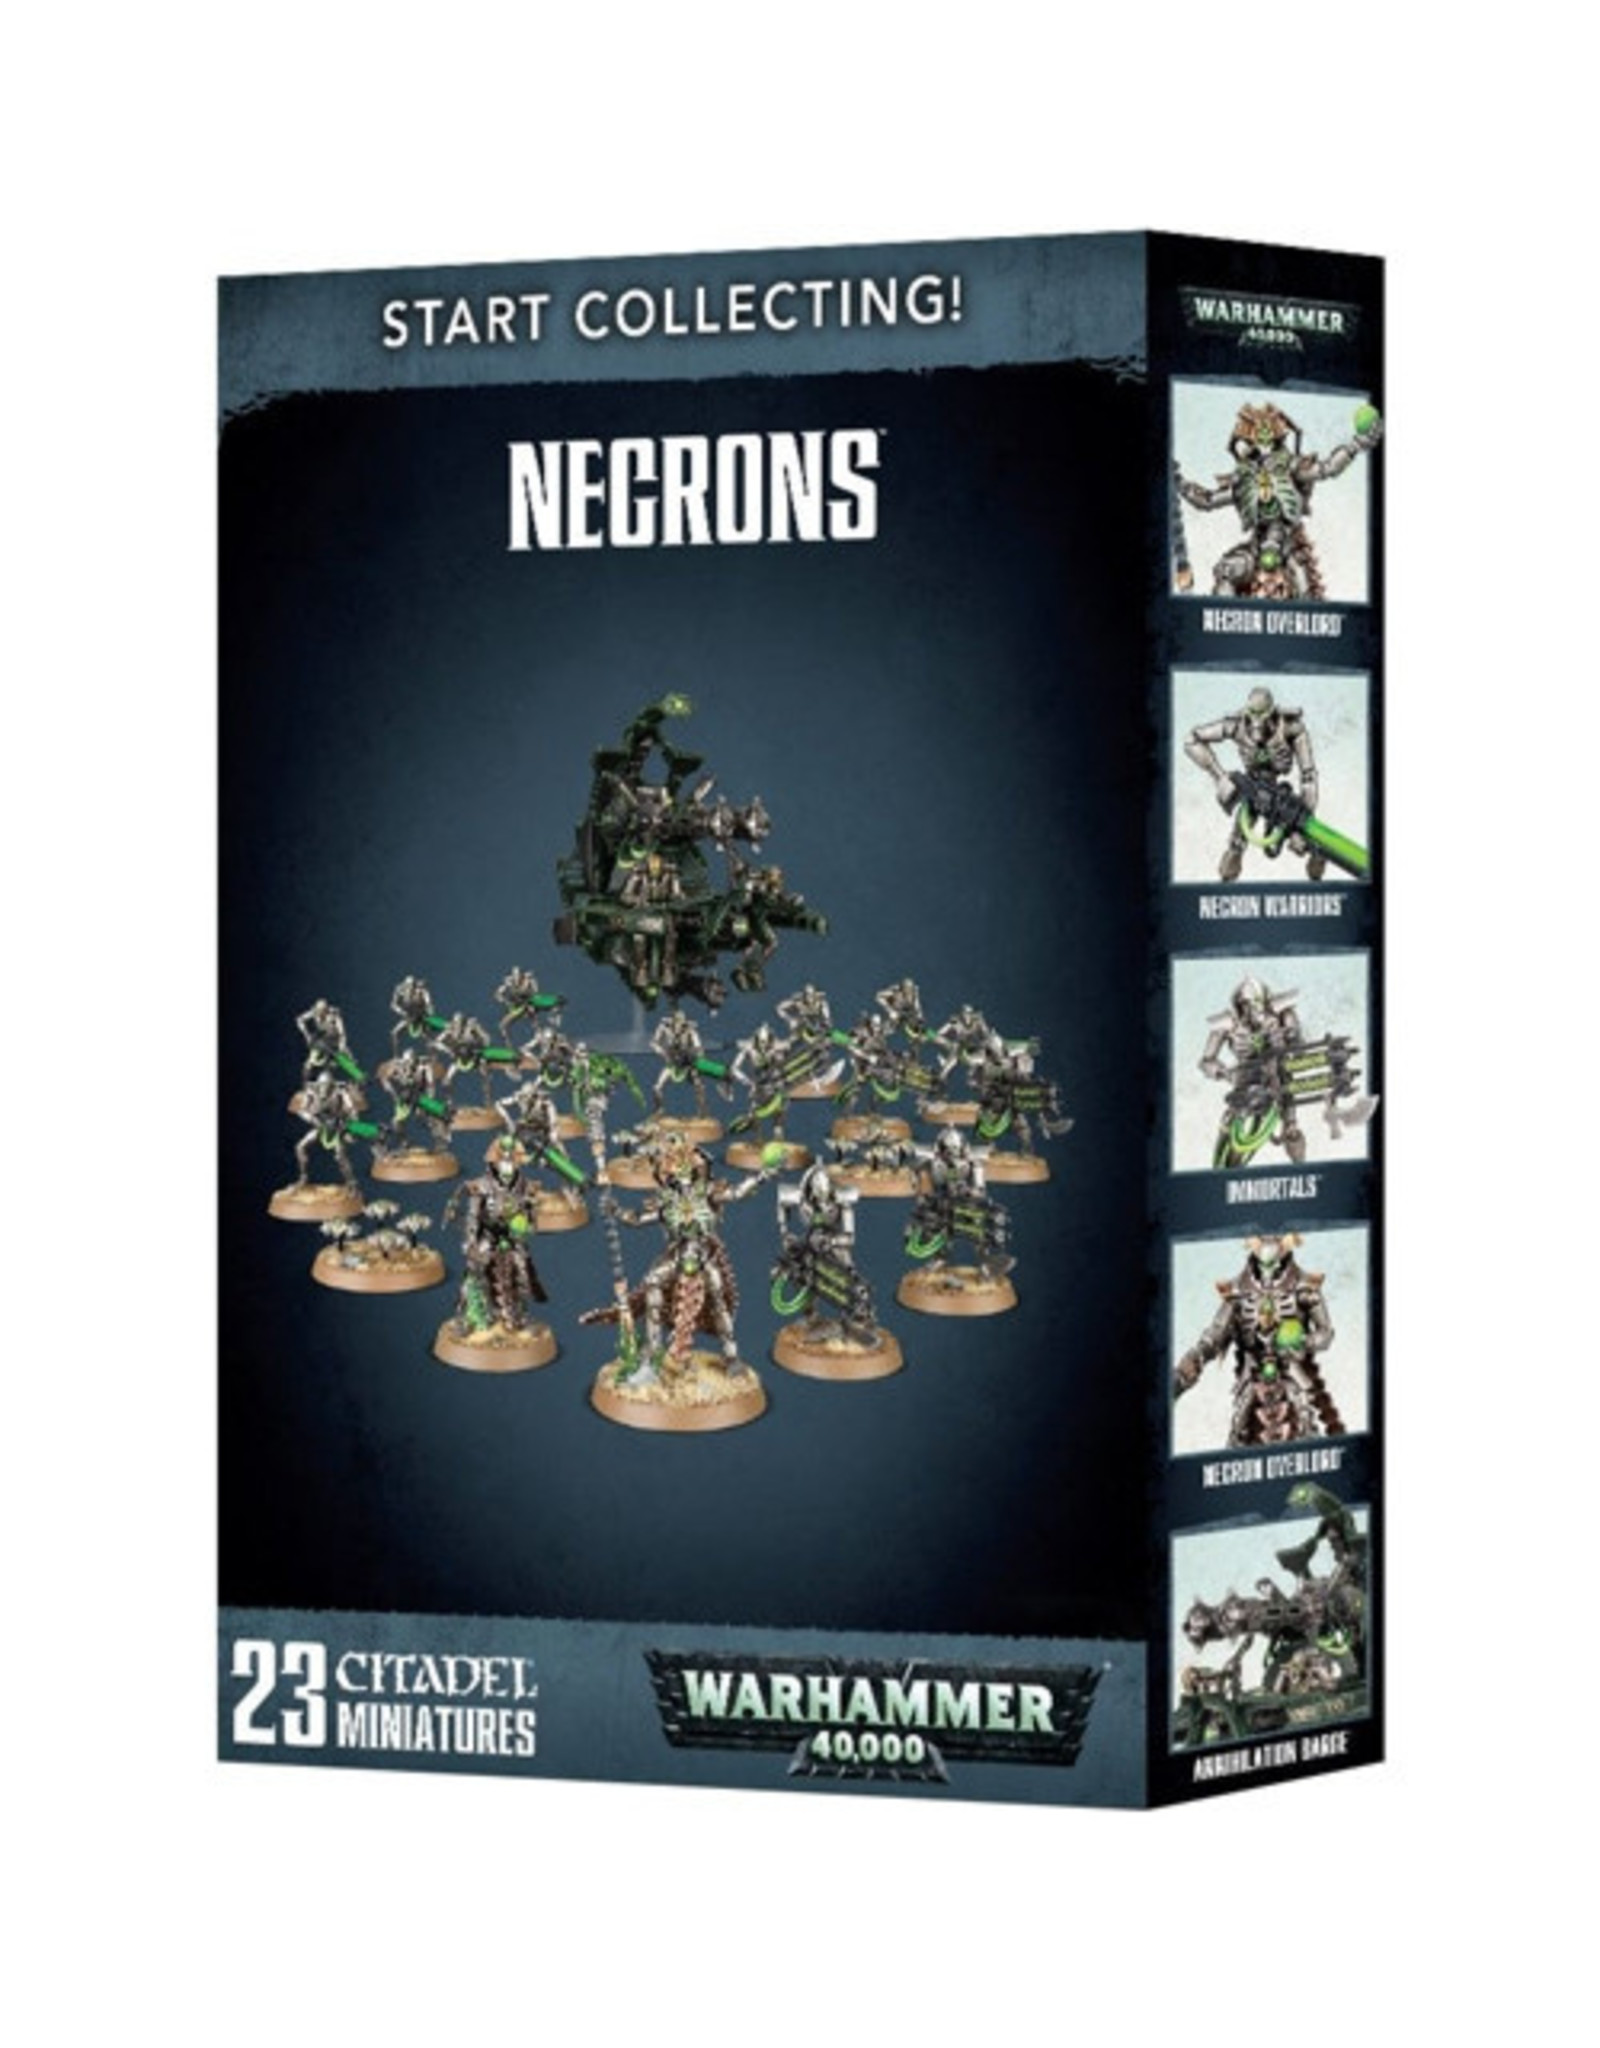 Warhammer 40K Start Collecting! Necrons